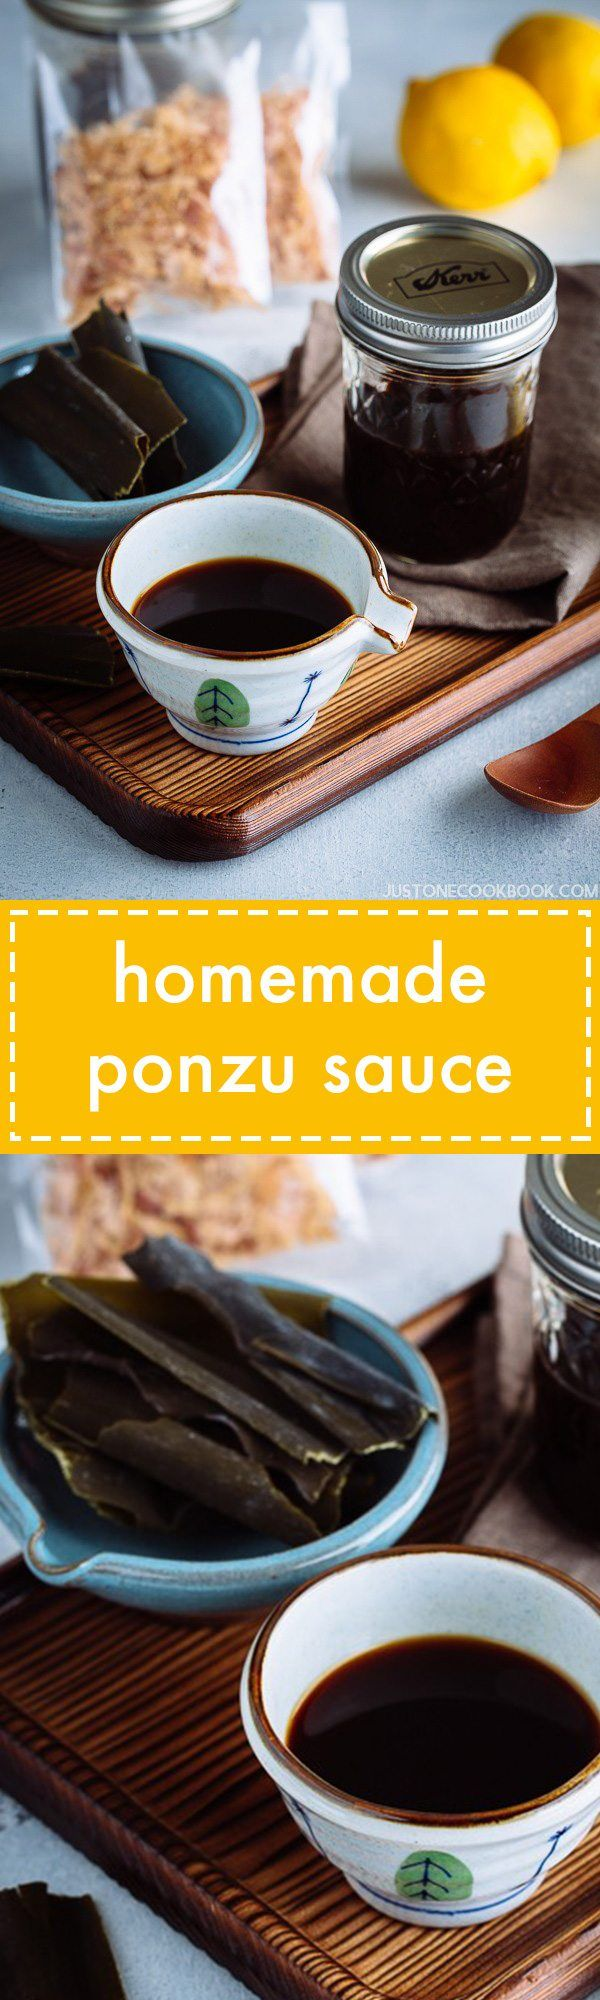 Quick & easy homemade ponzu sauce recipe with just 5 ingredients. Enjoy this versatile sauce with Shabu Shabu, sashimi, grilled meats, salad, and more!